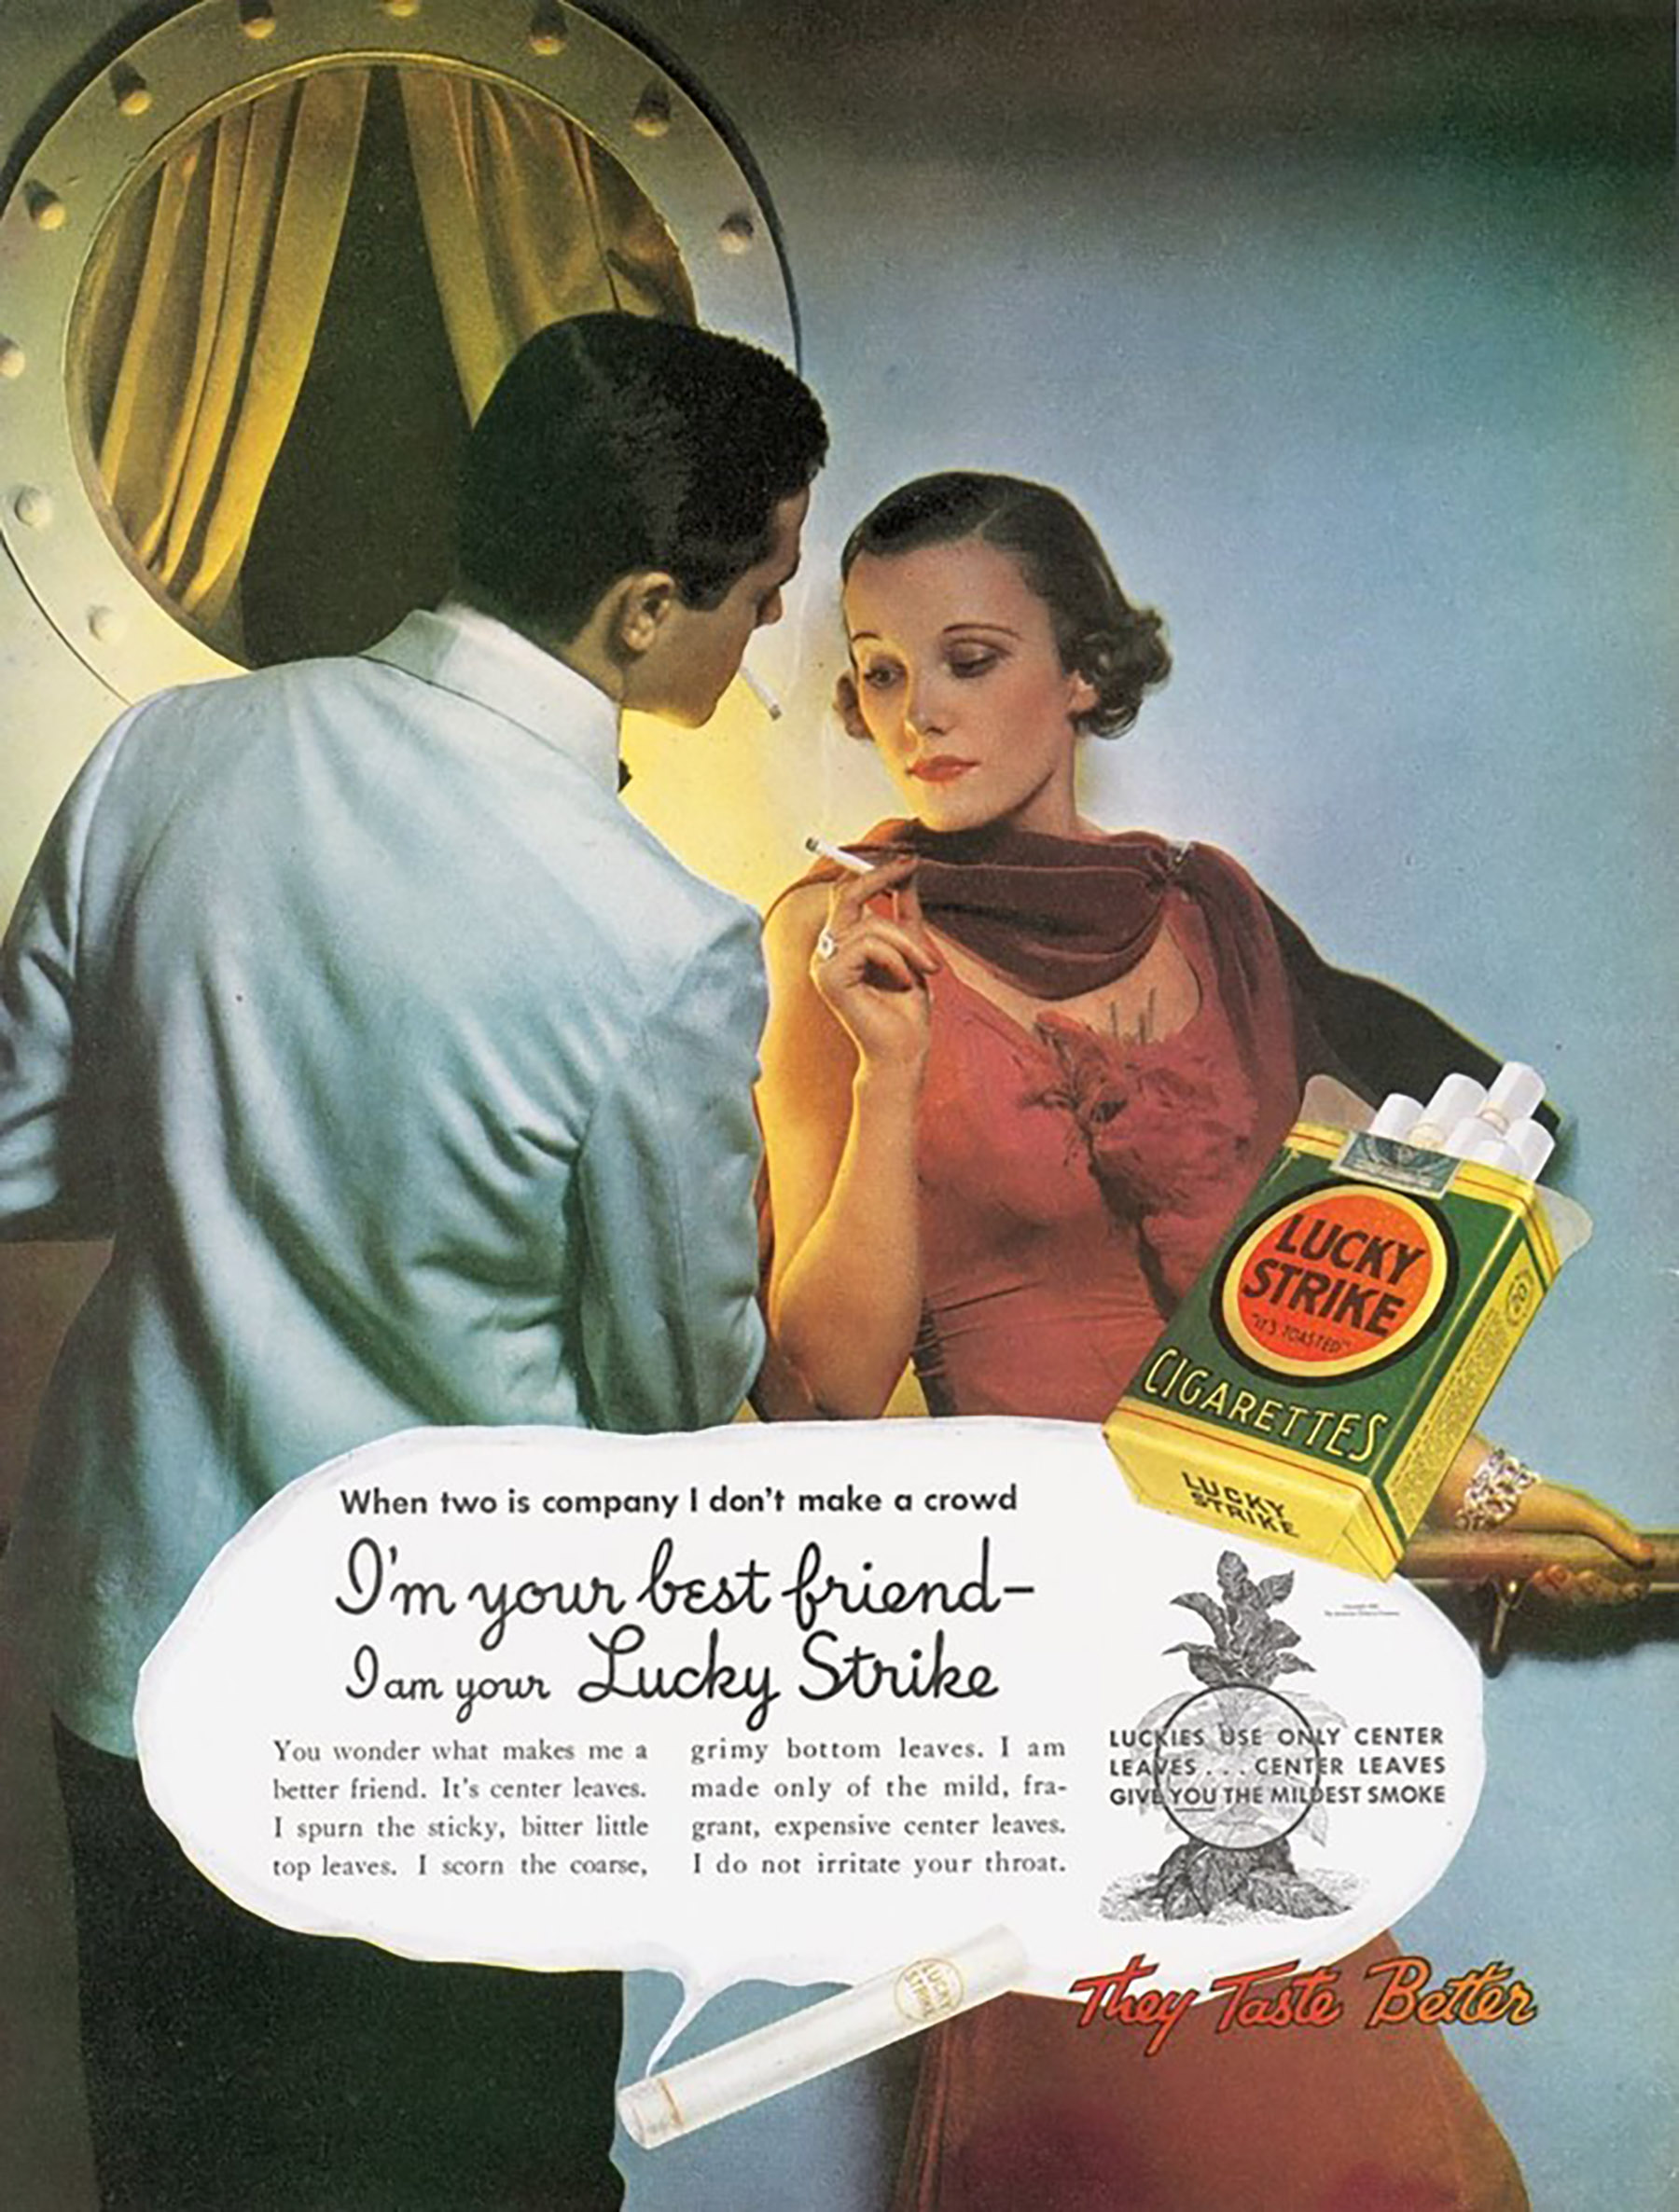 iGNANT-Print-Taschen-Alcohol-Tobacco-Ads-002